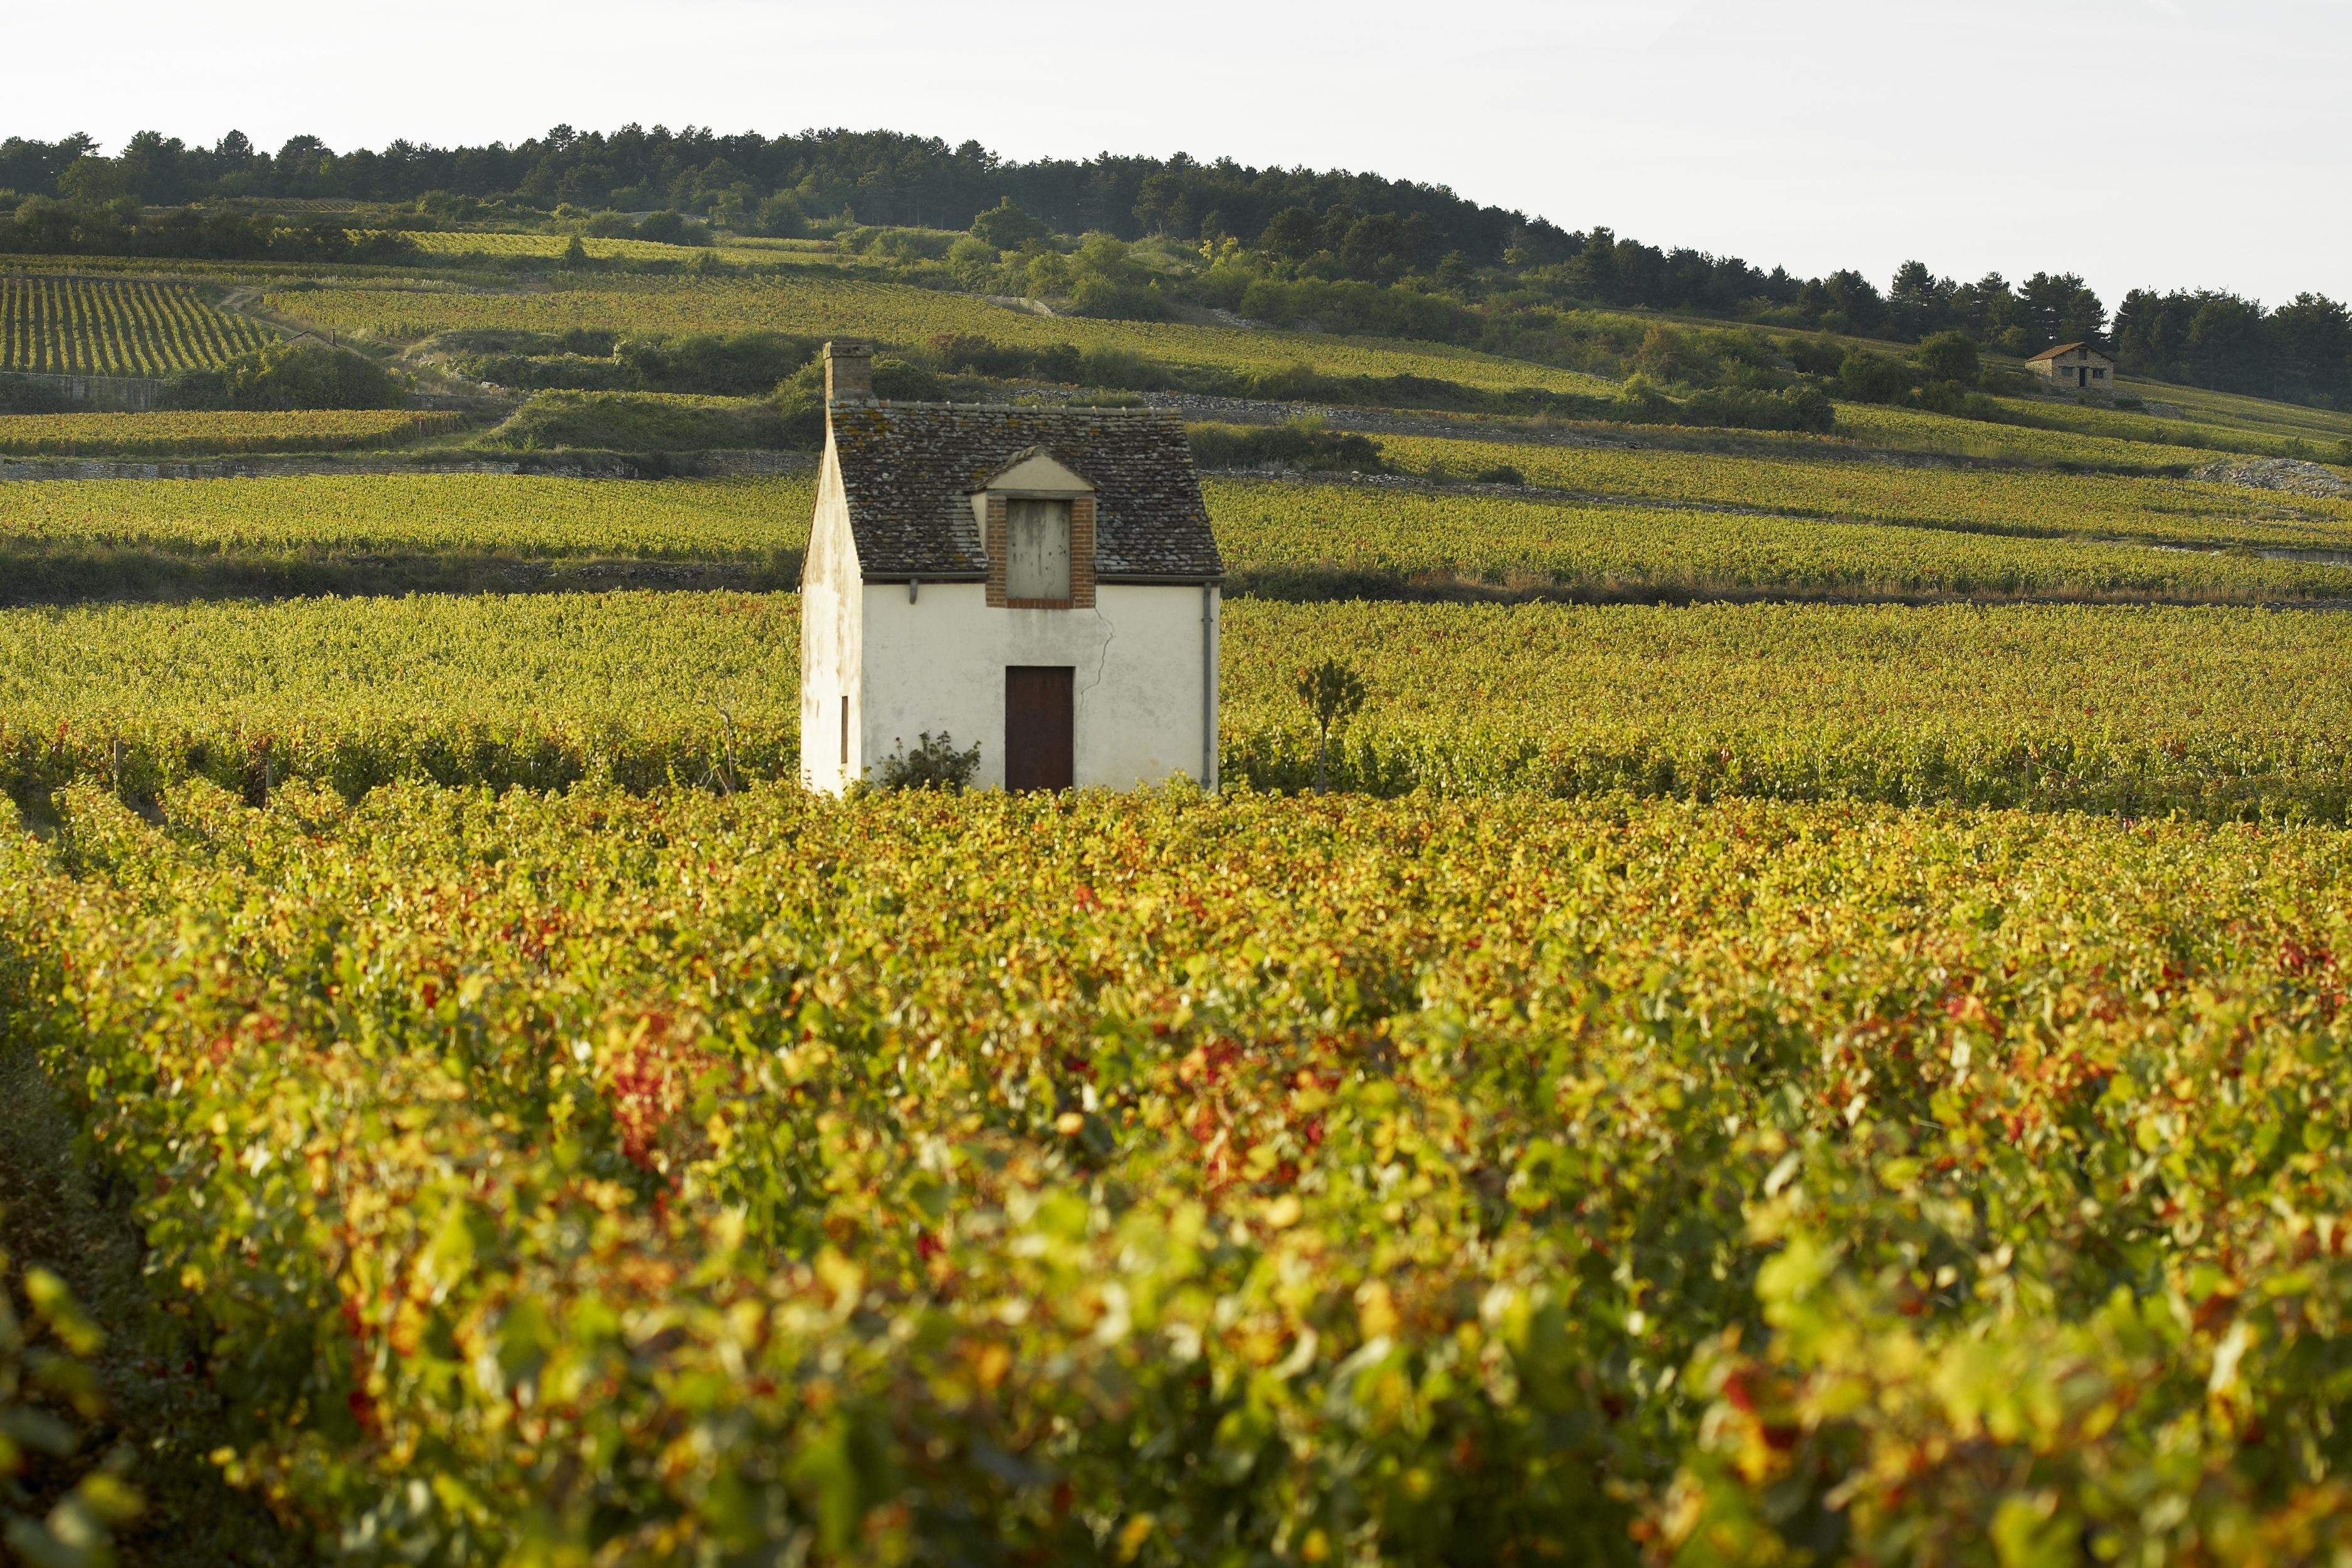 How to Spend 1 Day in Beaune